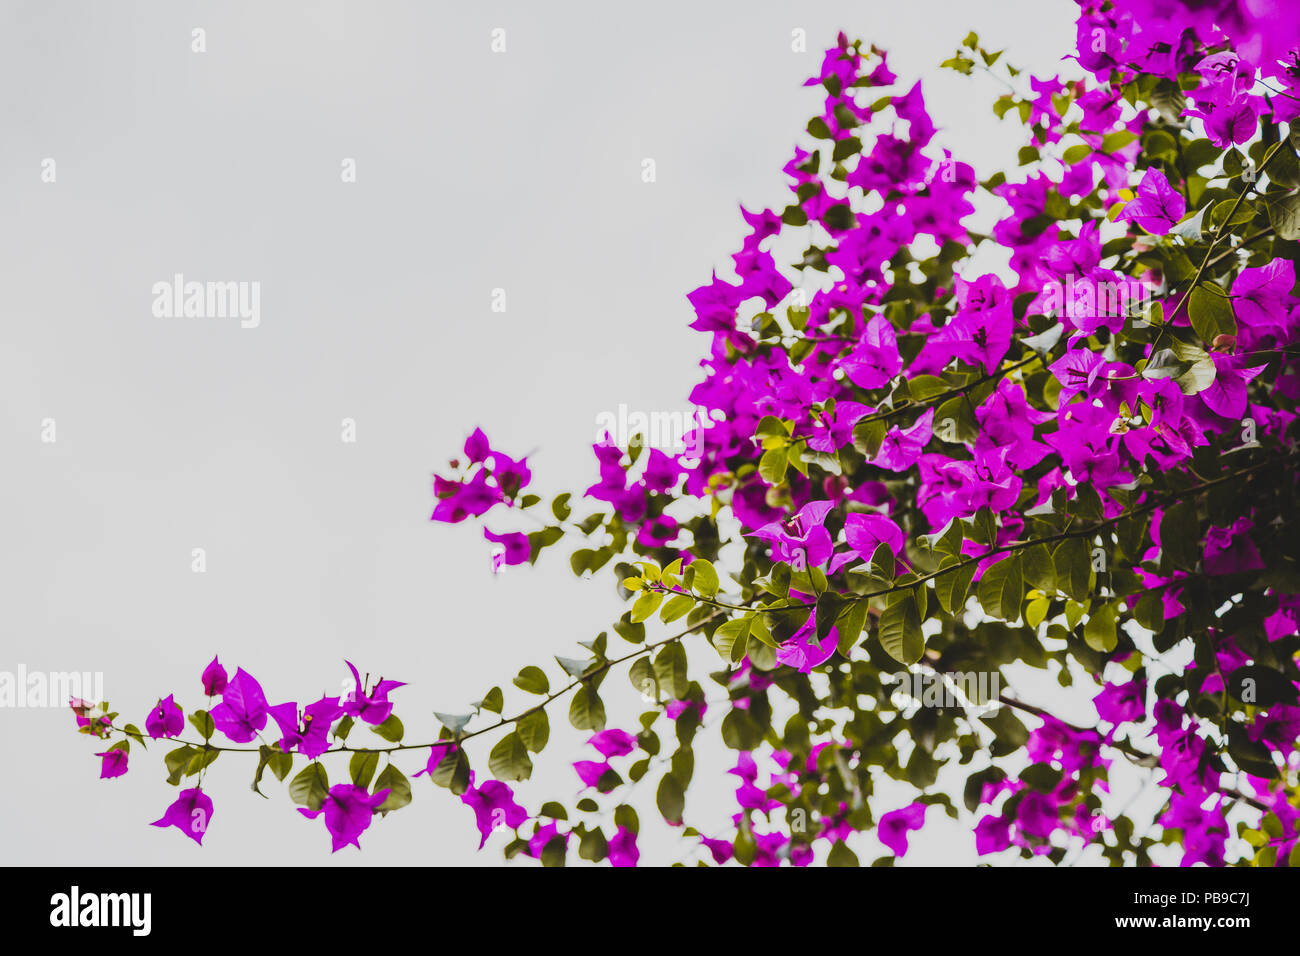 Abstract Natural Nature Pink Flowers Background Spring And Summer